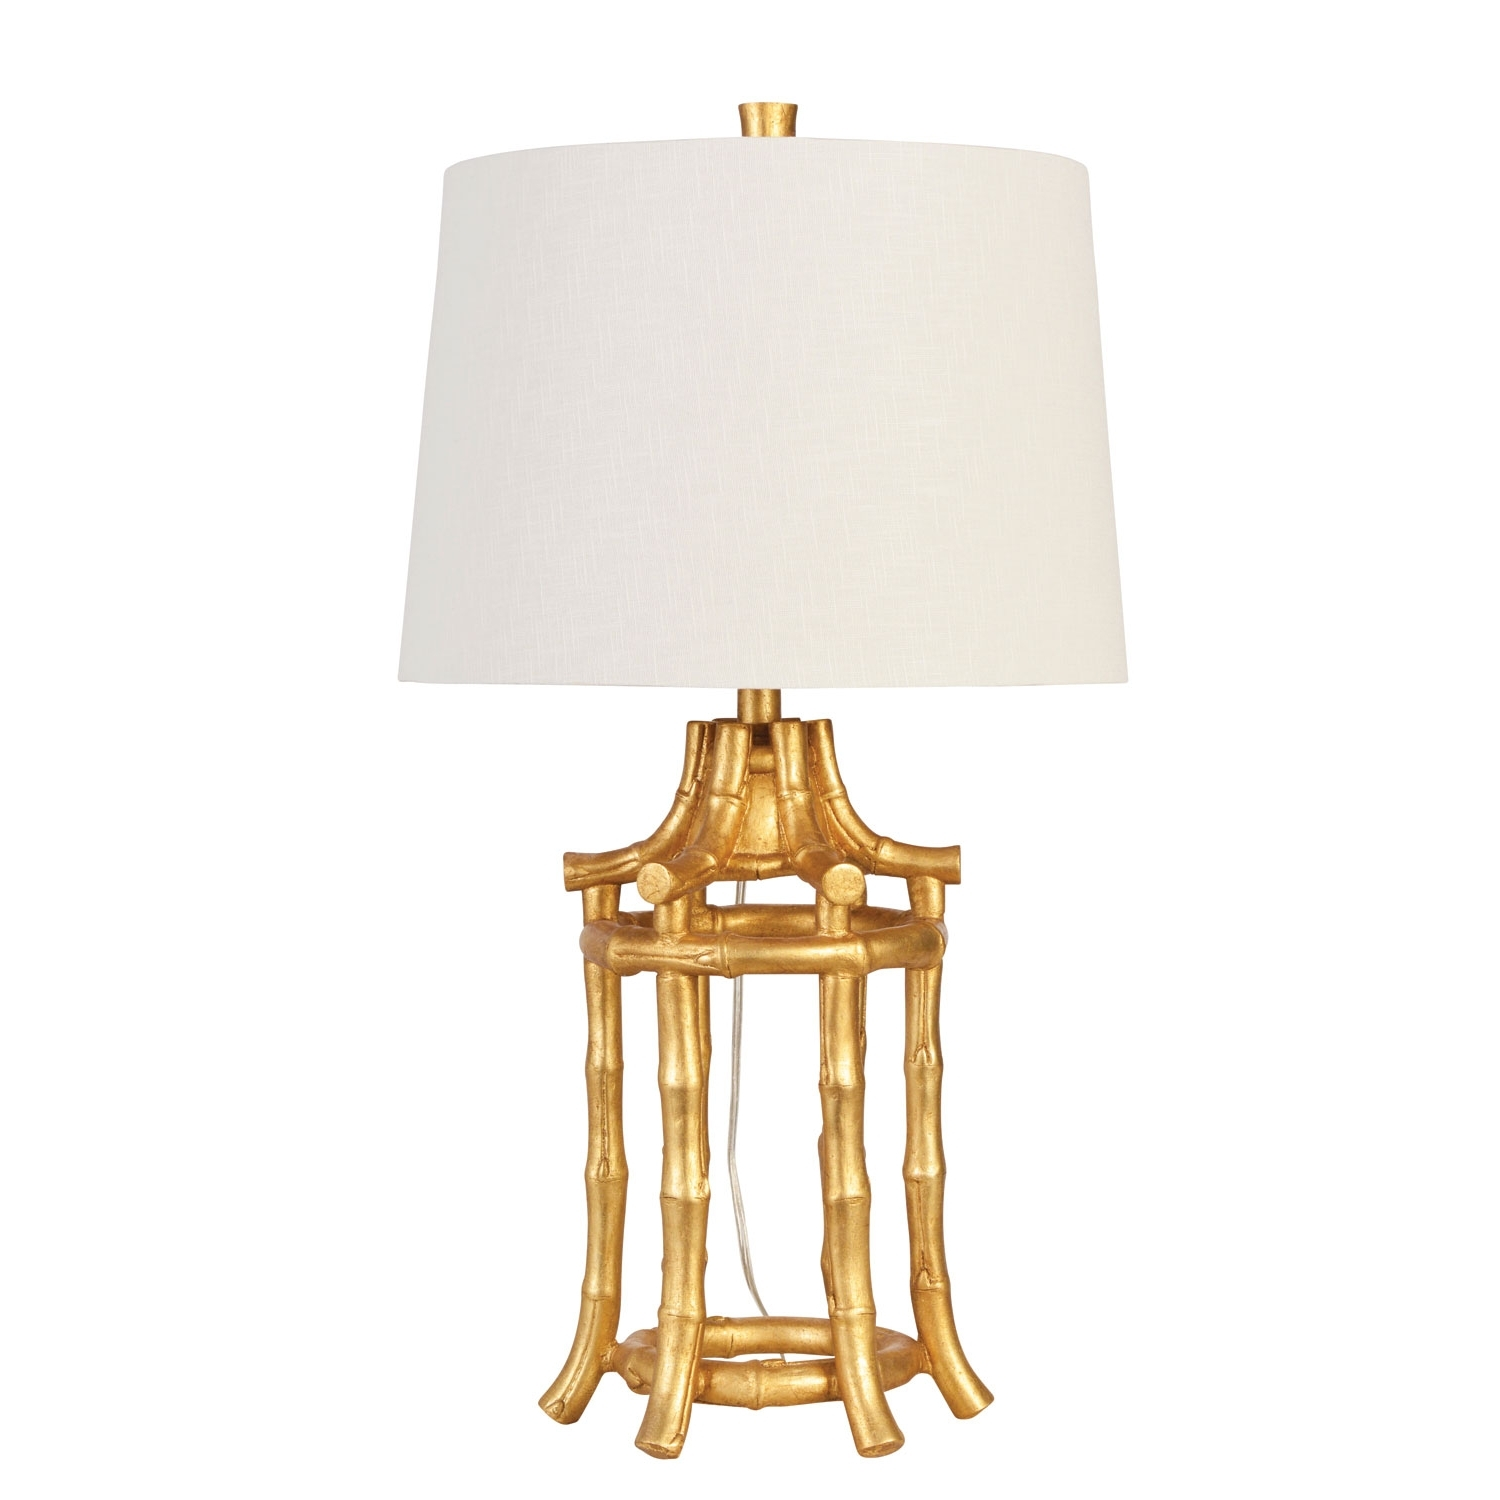 Lamp : Gold Table Lamp Base Lamps Living Room Shades For With Metal With Famous Gold Living Room Table Lamps (View 7 of 15)